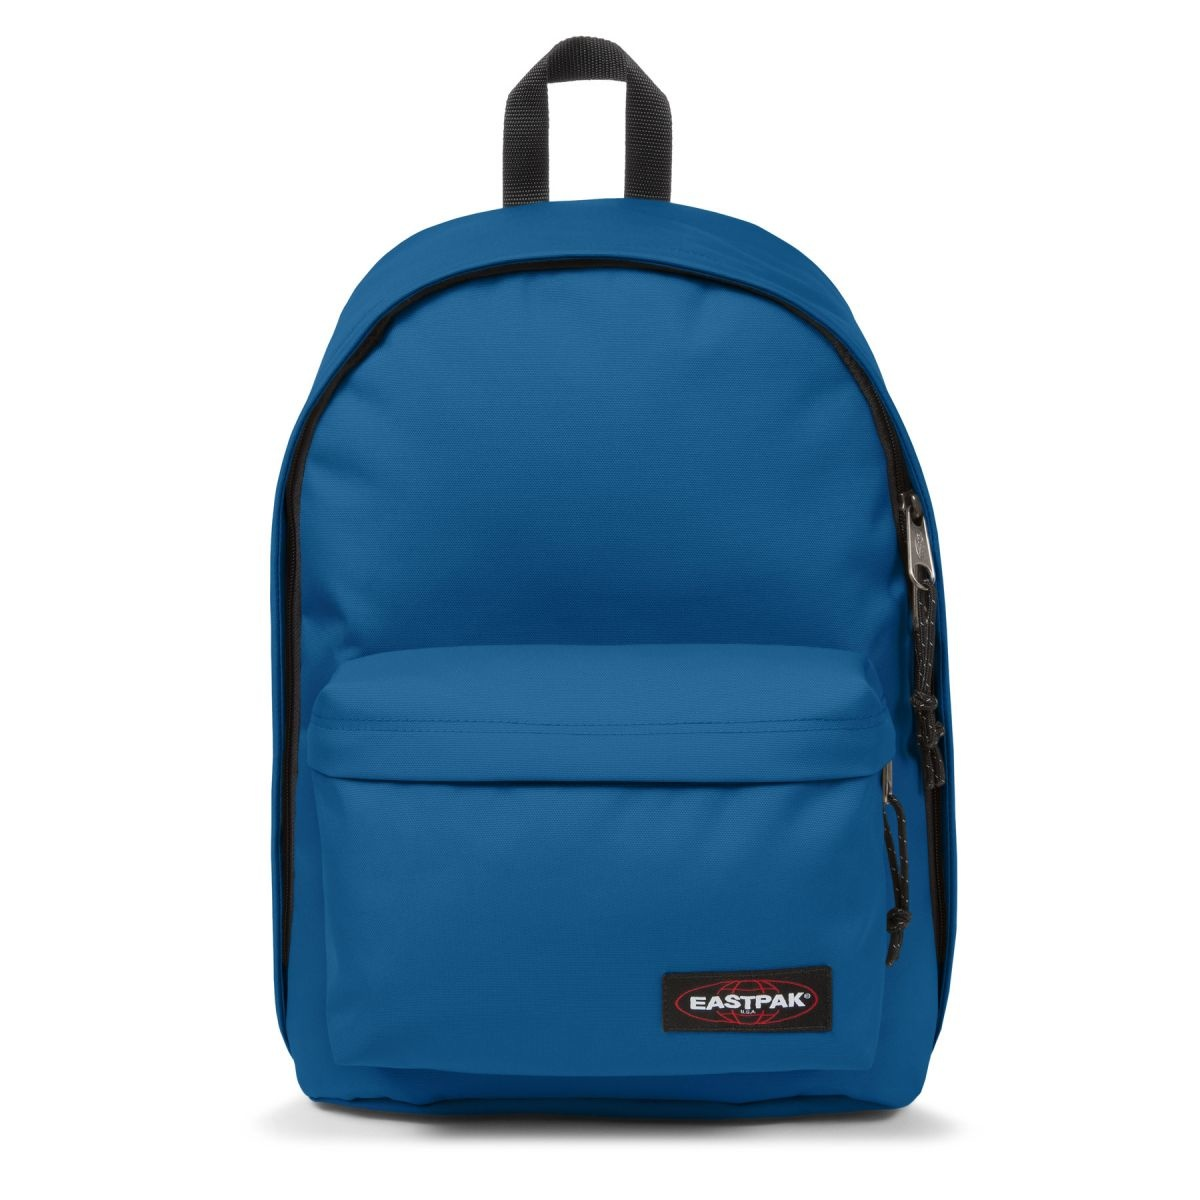 Eastpak Eastpak Out Of Office Urban Blue 15 inch laptop rugtas